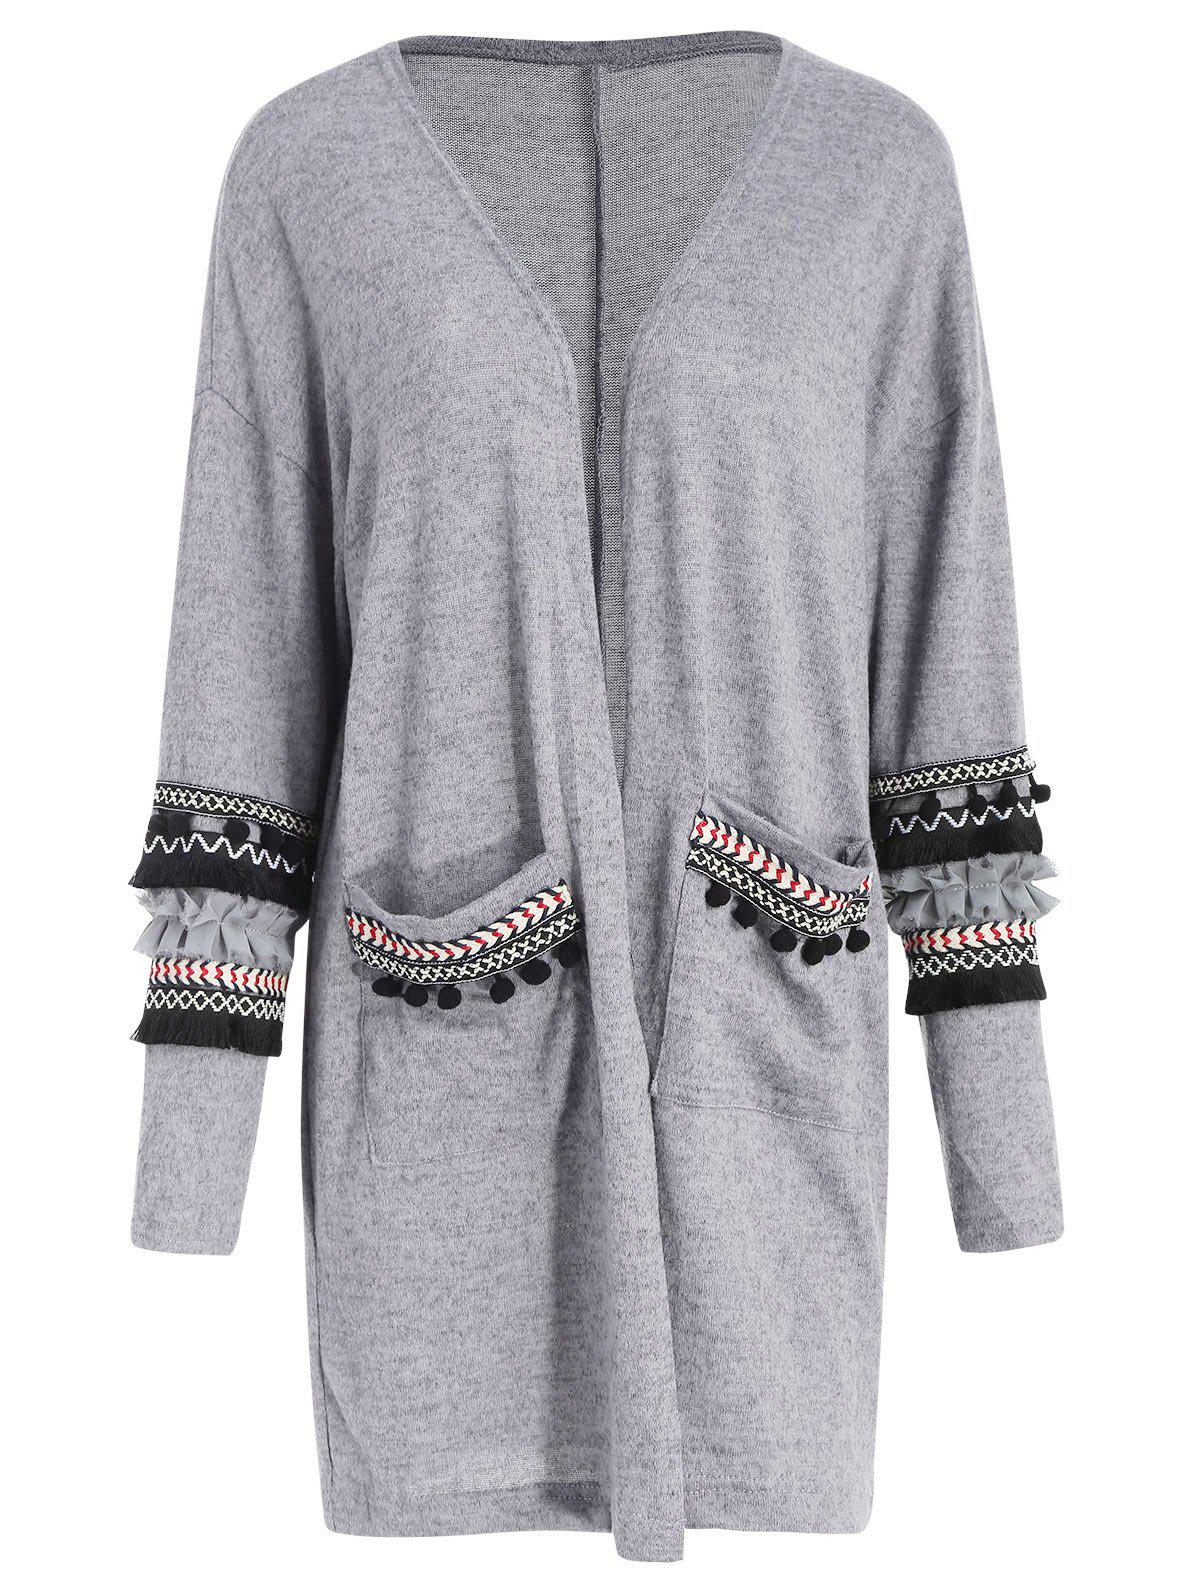 Discount Embroidered Longline Pockets Cardigan